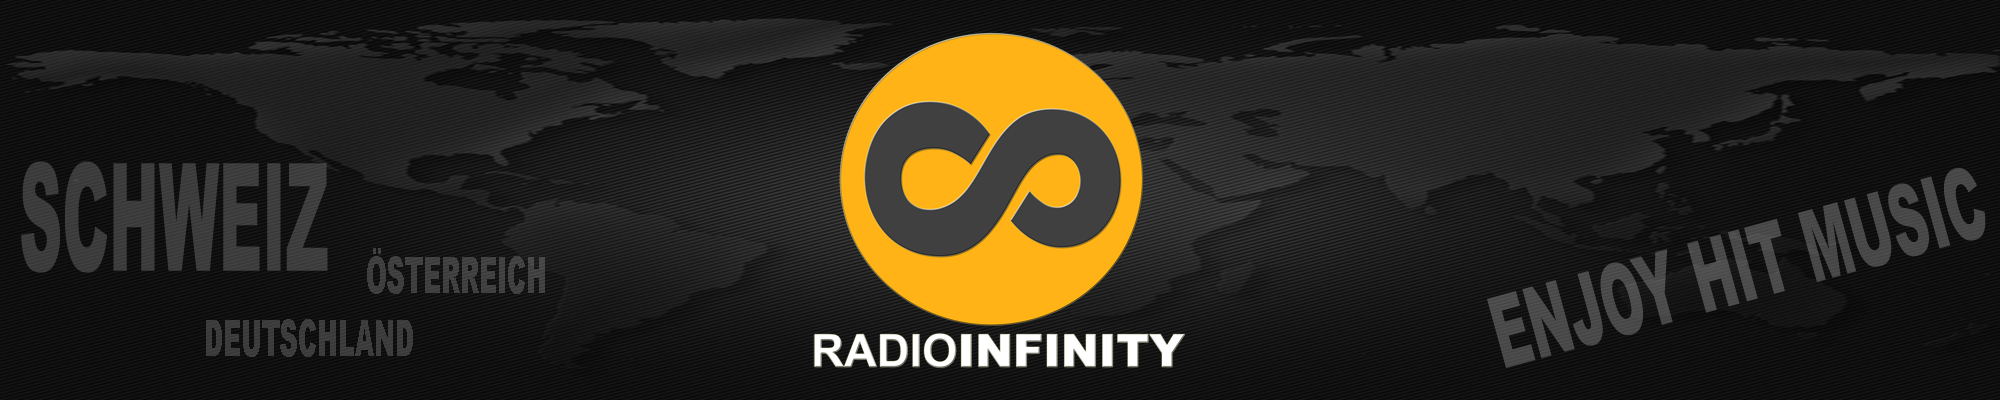 Radio Infinity: Musiknews/ Musik-News/ Enjoy Hit Music